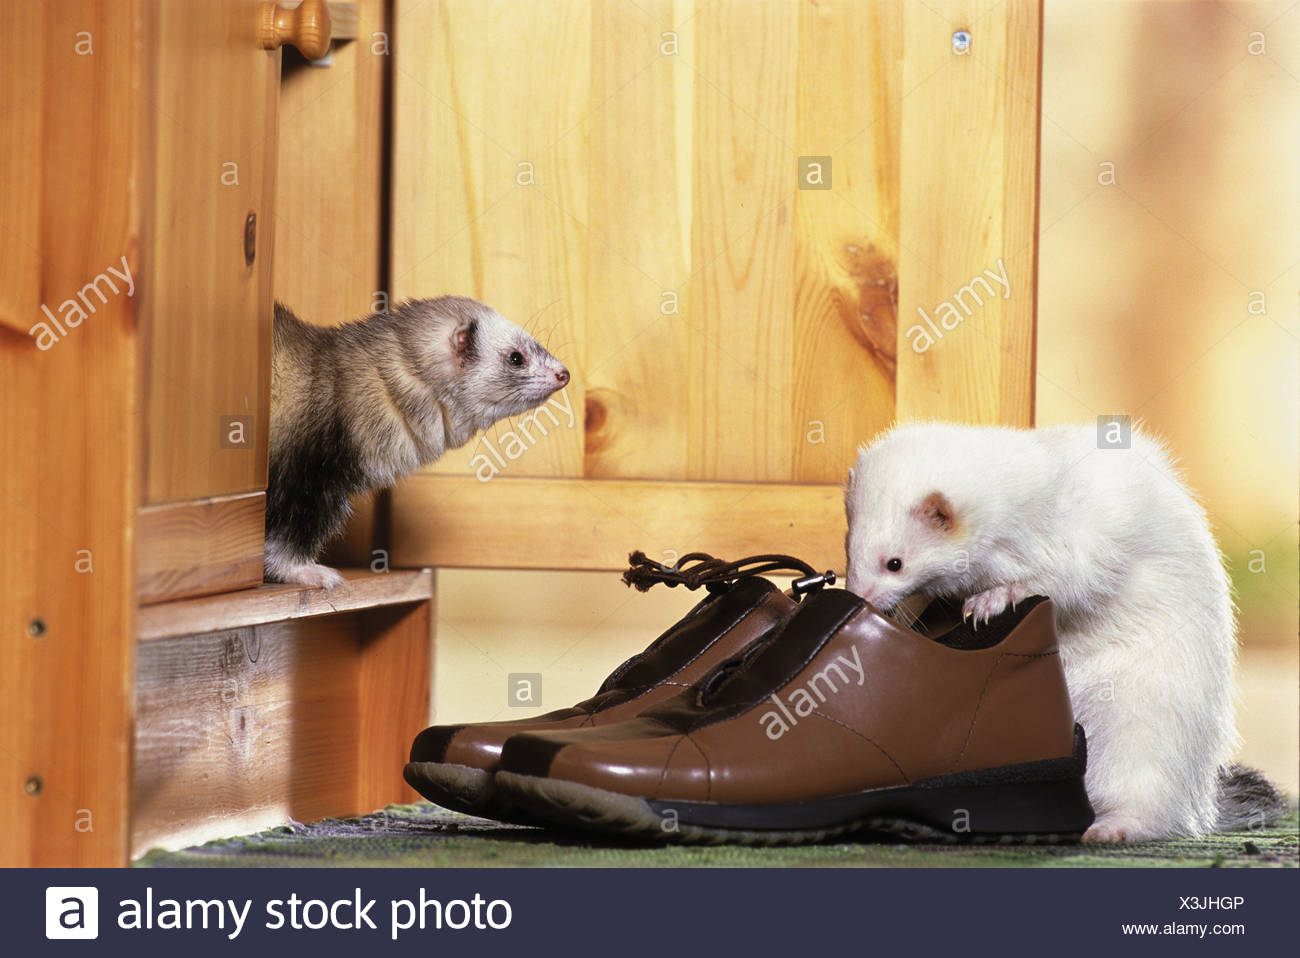 two ferrets - Stock Image